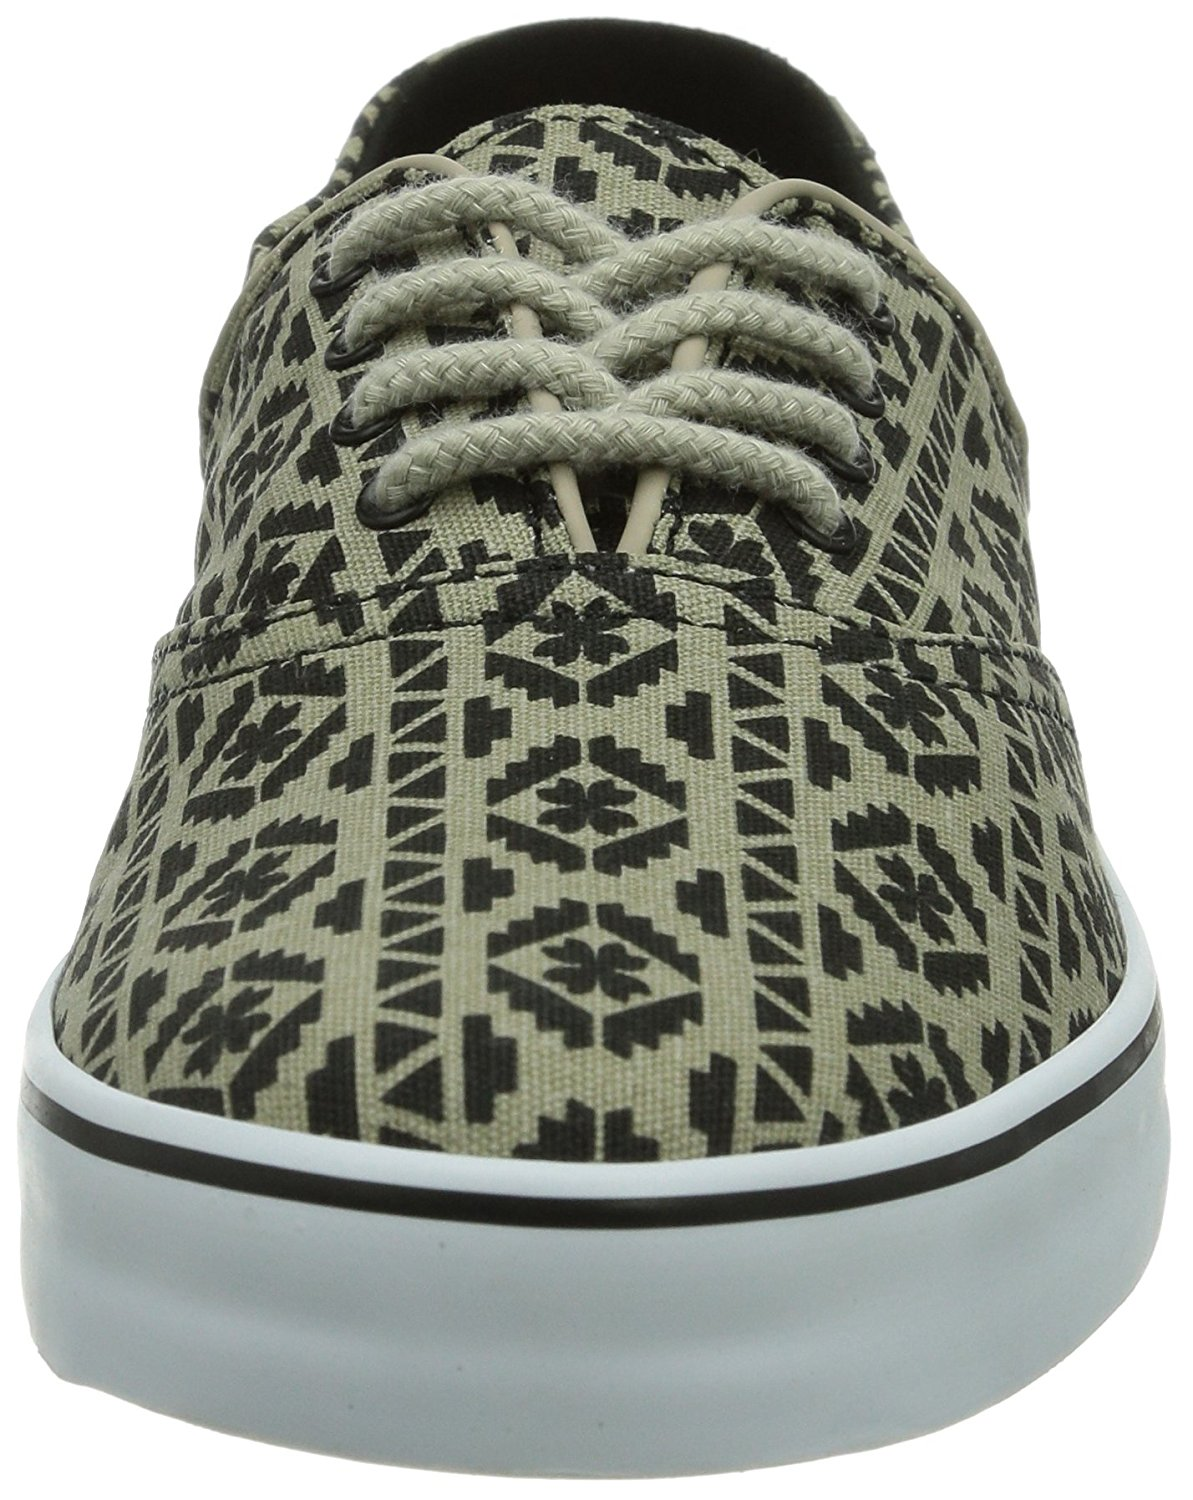 Etnies Women's Corby Lace-Up Shoe, Stone, Size 10.0